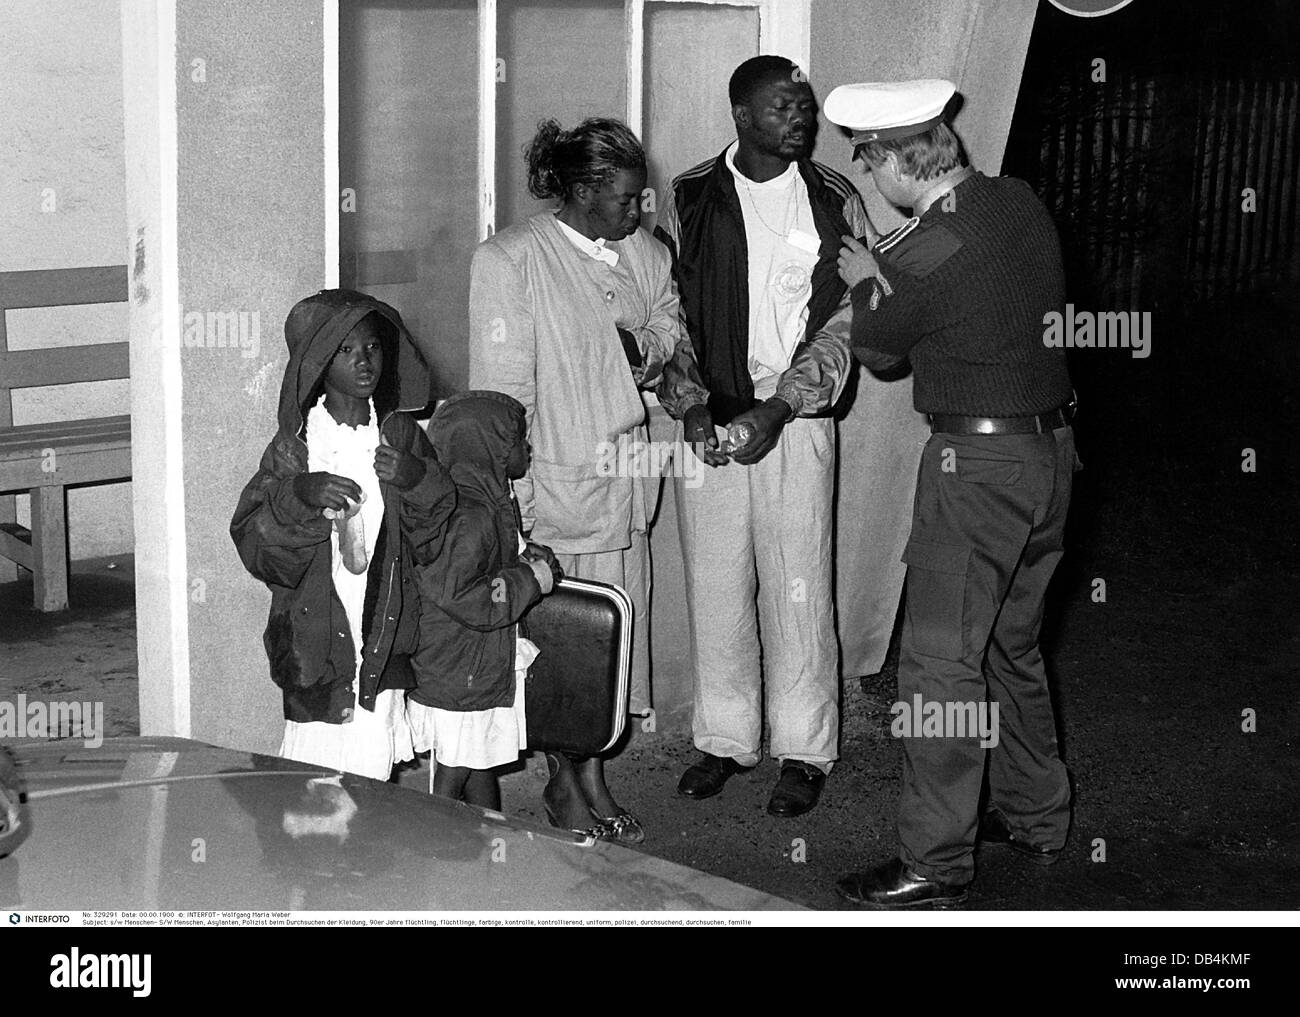 people, asylum seekers, policeman checking clothes, 1990s, , Additional-Rights-Clearences-NA - Stock Image